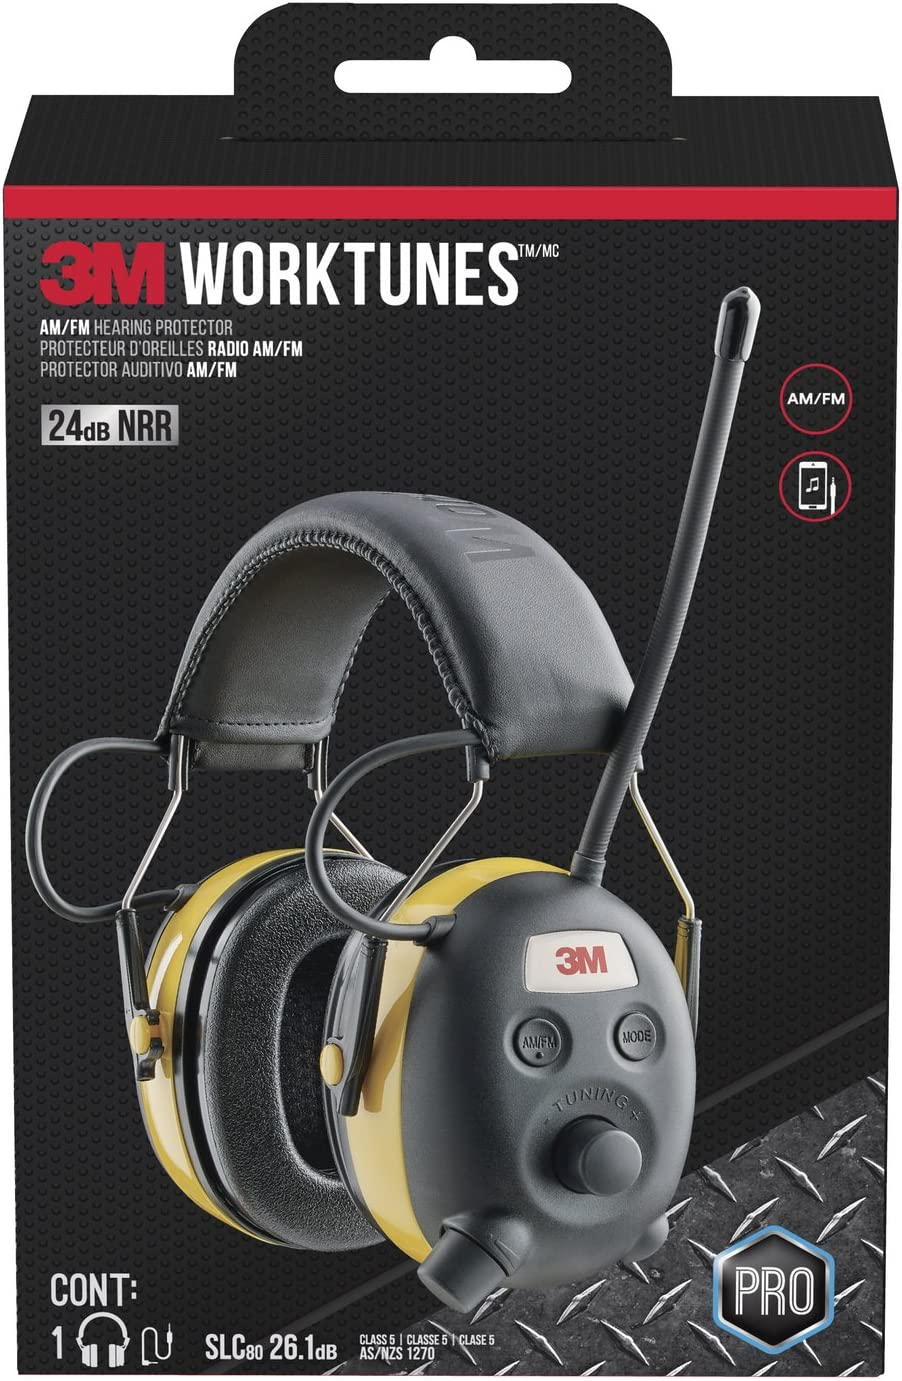 WorkTunes AM/FM Hearing Protector, Great Father's